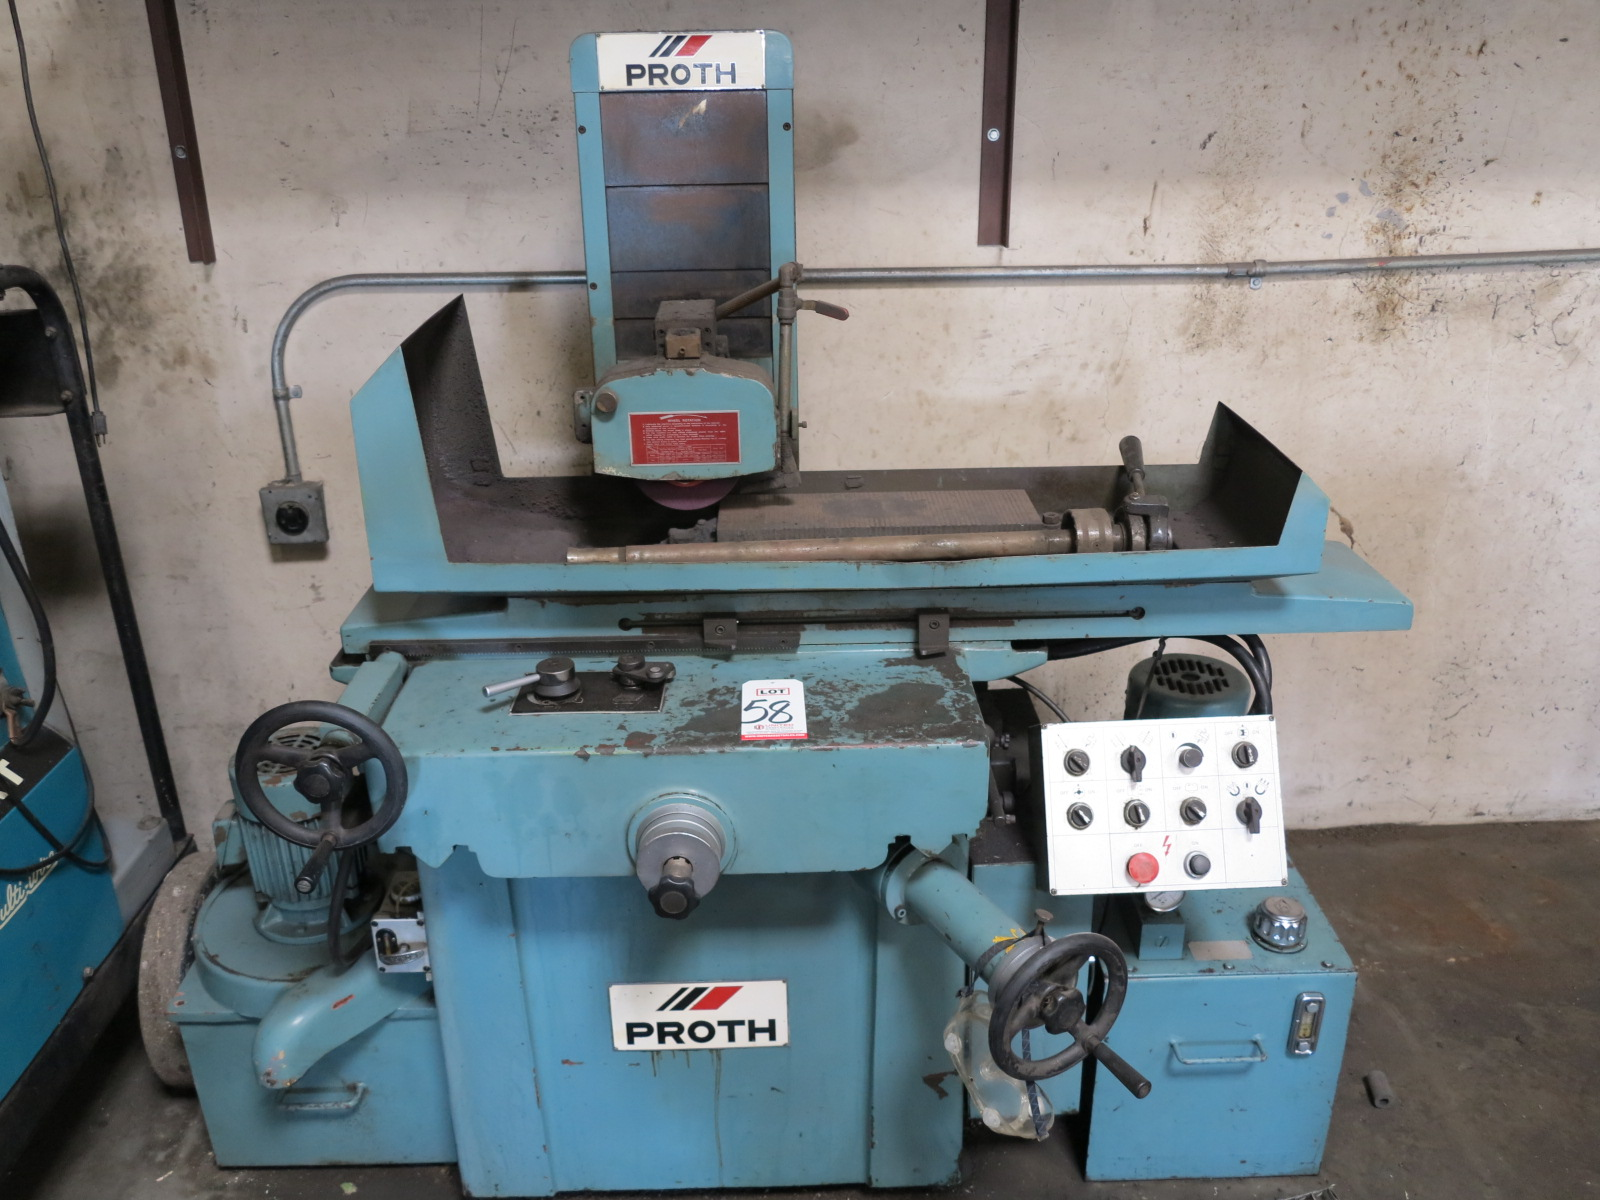 """1983 PROTH SURFACE GRINDER, MODEL PSG-2550AH, S/N 30468-2, W/ 6"""" X 18"""" MAGNETIC CHUCK"""